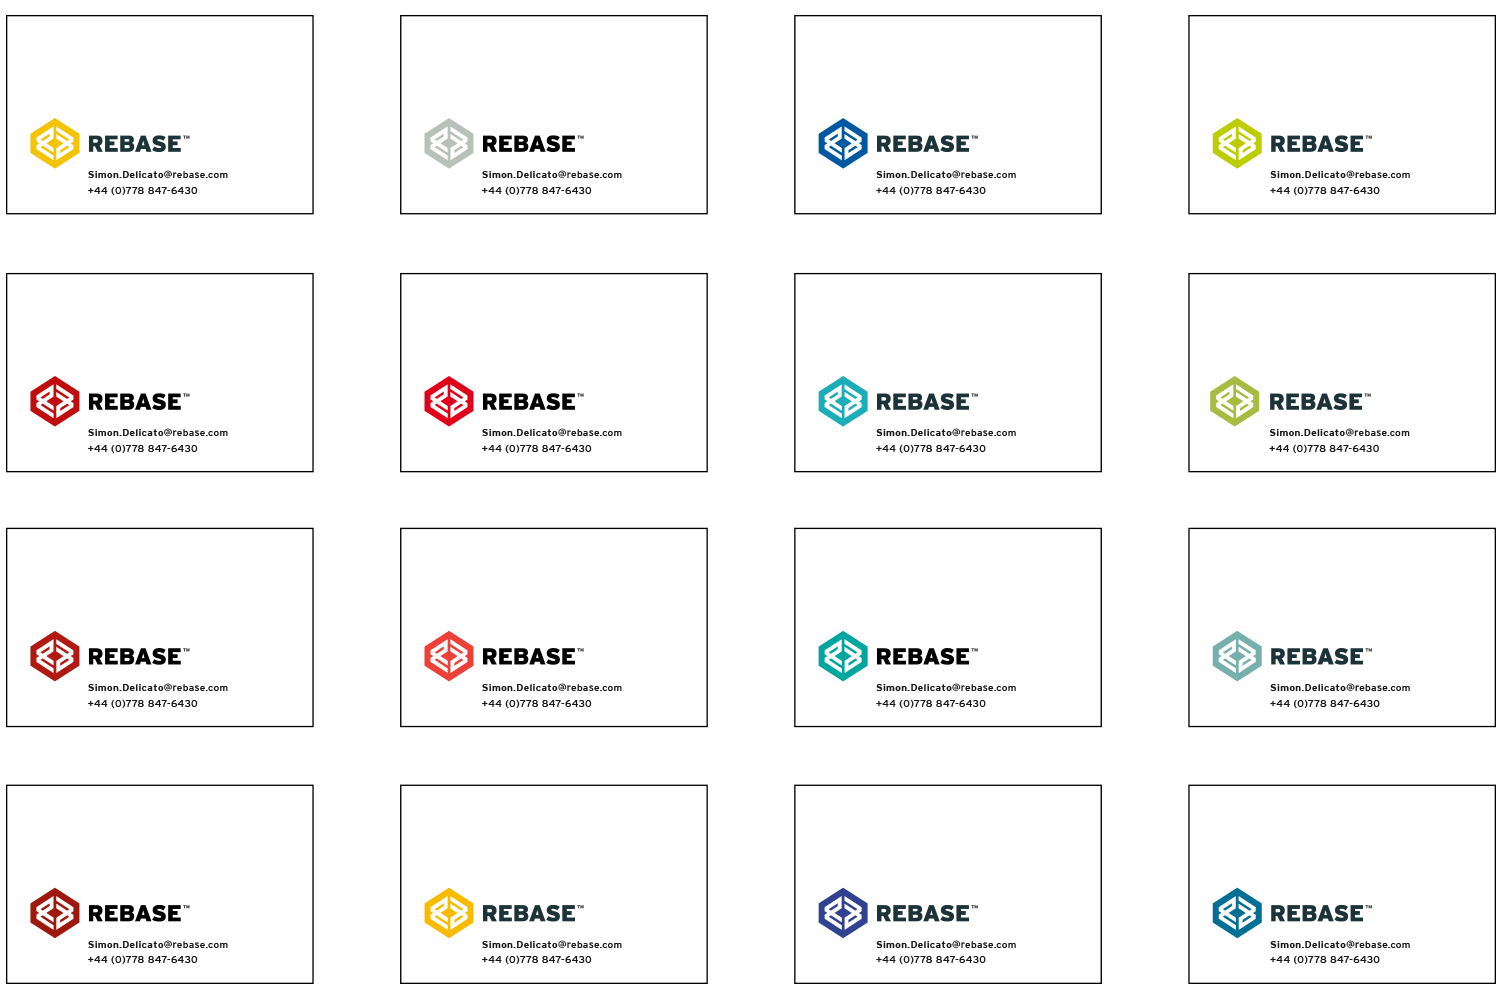 ReBase Business Card Colour Options